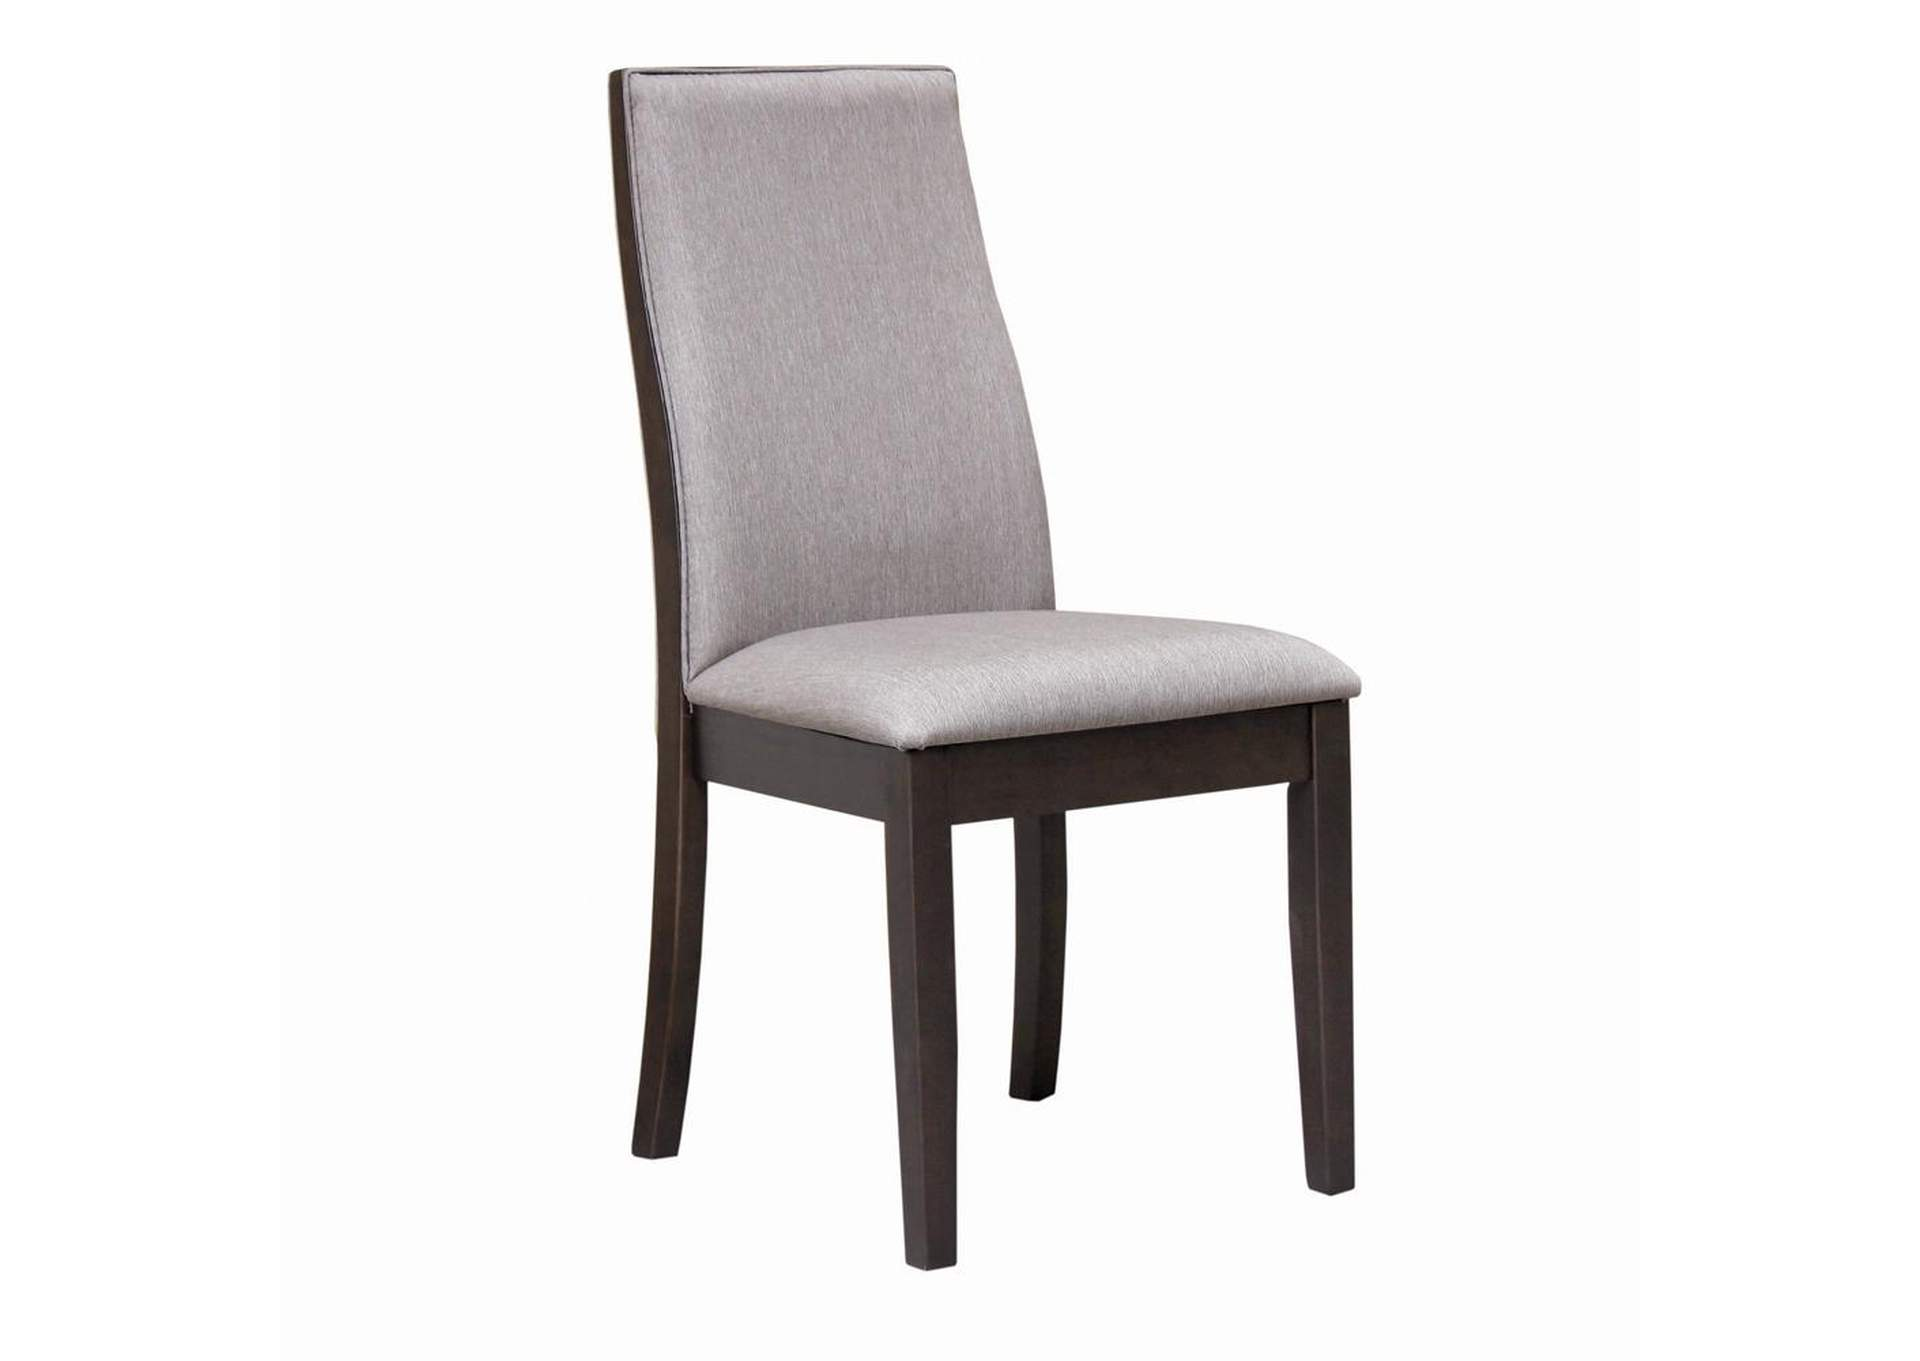 Spring Creek Upholstered Side Chairs Grey (Set of 2),Coaster Furniture